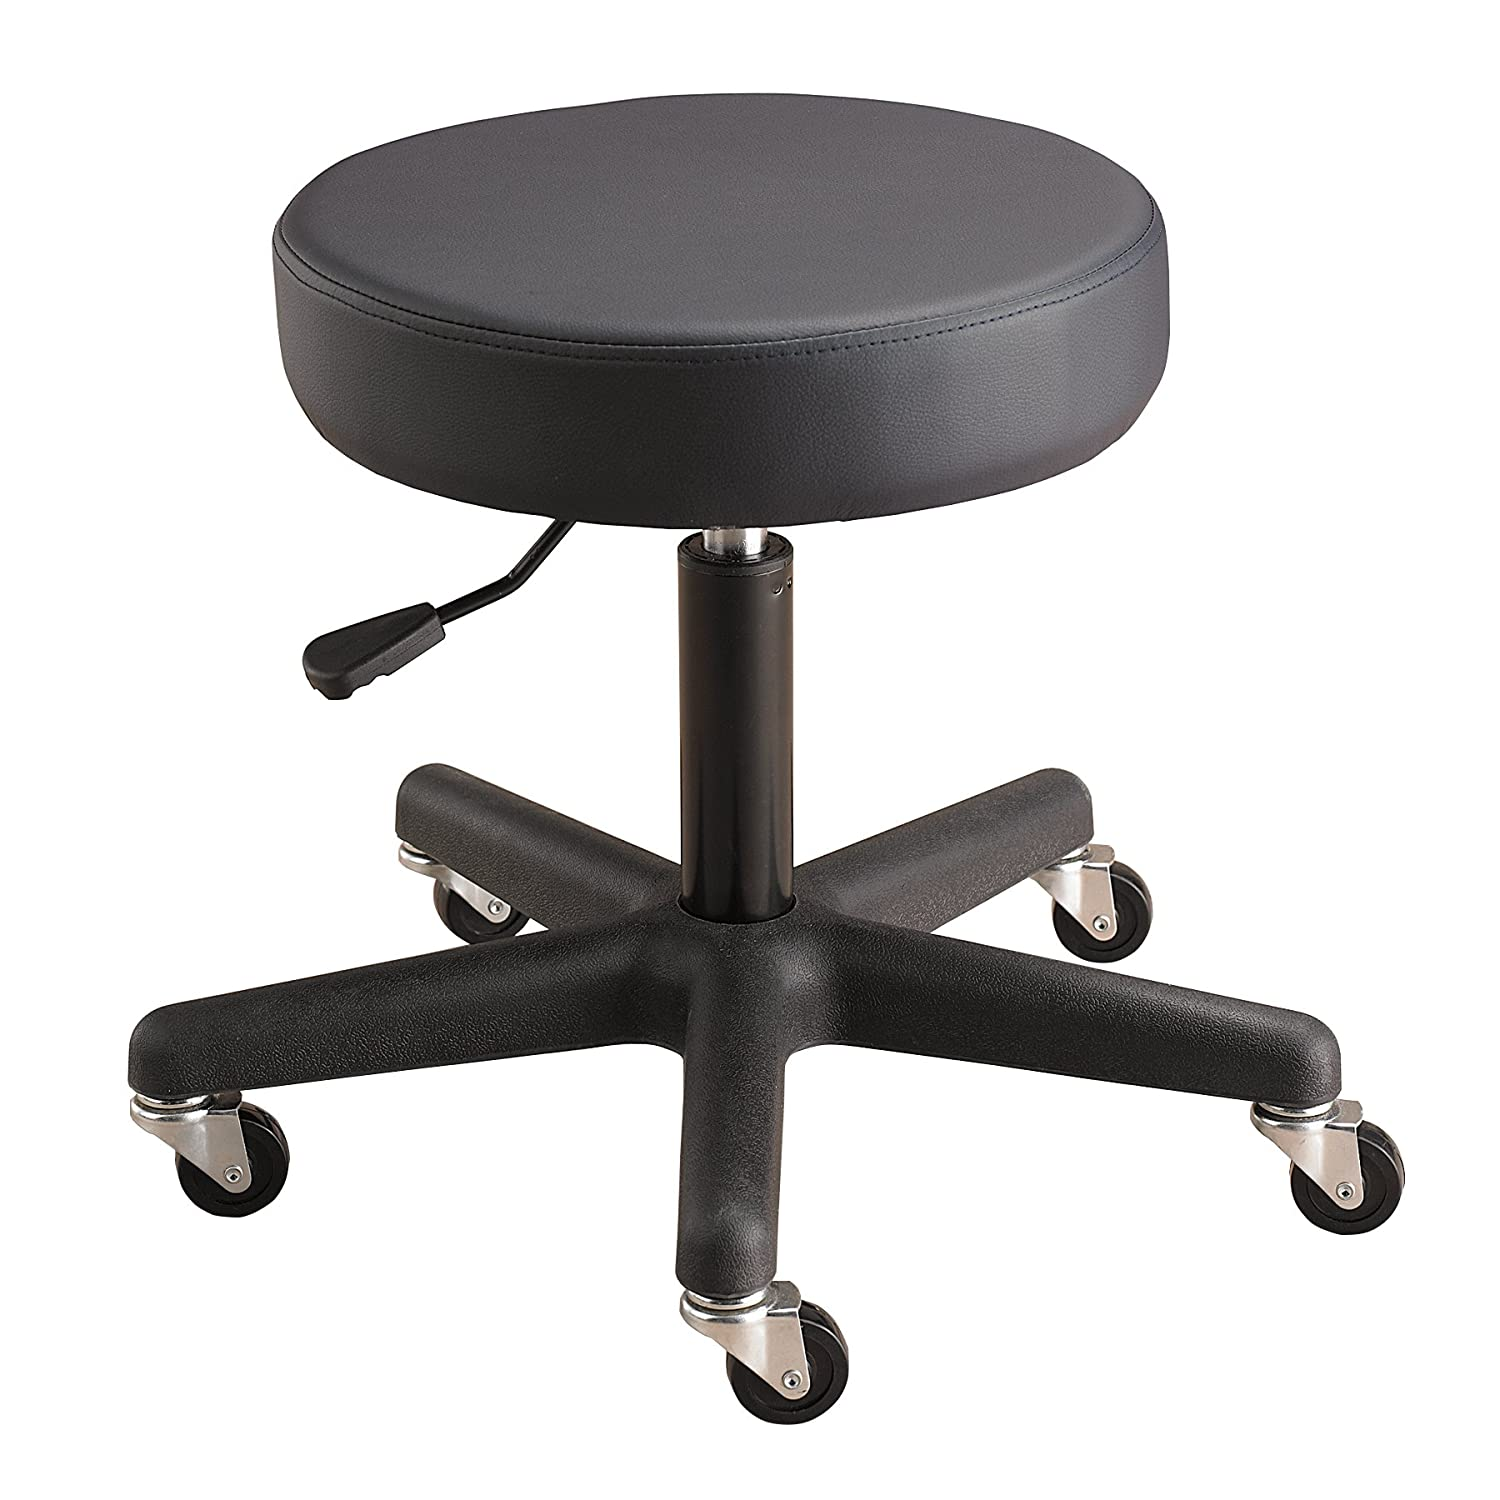 Sammons Preston - 58674 Pneumatic Therapy Stool Without Back, Black, Cushion Seat for Office, Clinical, or at Home Use, Comfortable Seat for Back, Spine, and Lumbar Support, Adjustable Rolling Massage Stool